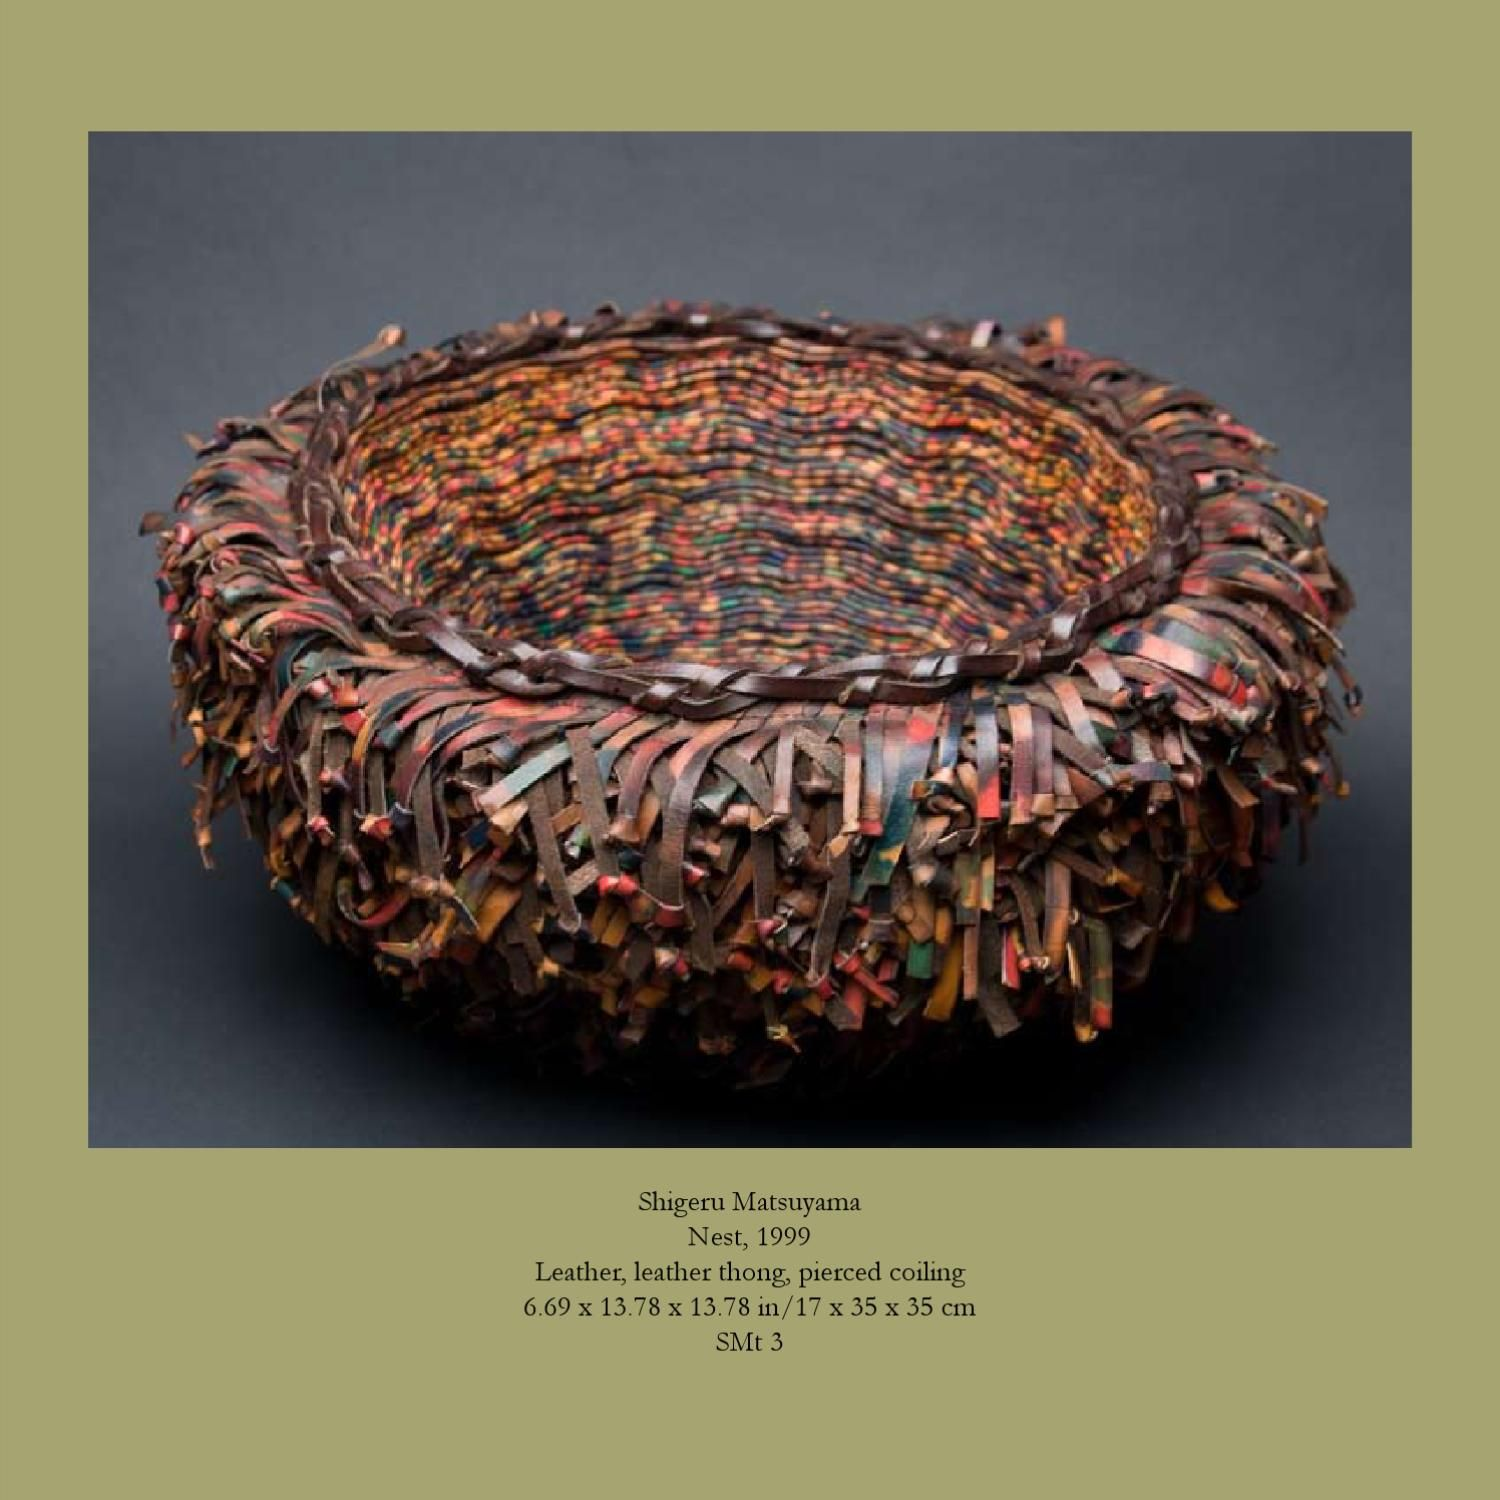 ISSUU - Uncontained Excitement: Woven Sculpture From Japan by Cavin-Morris Gallery